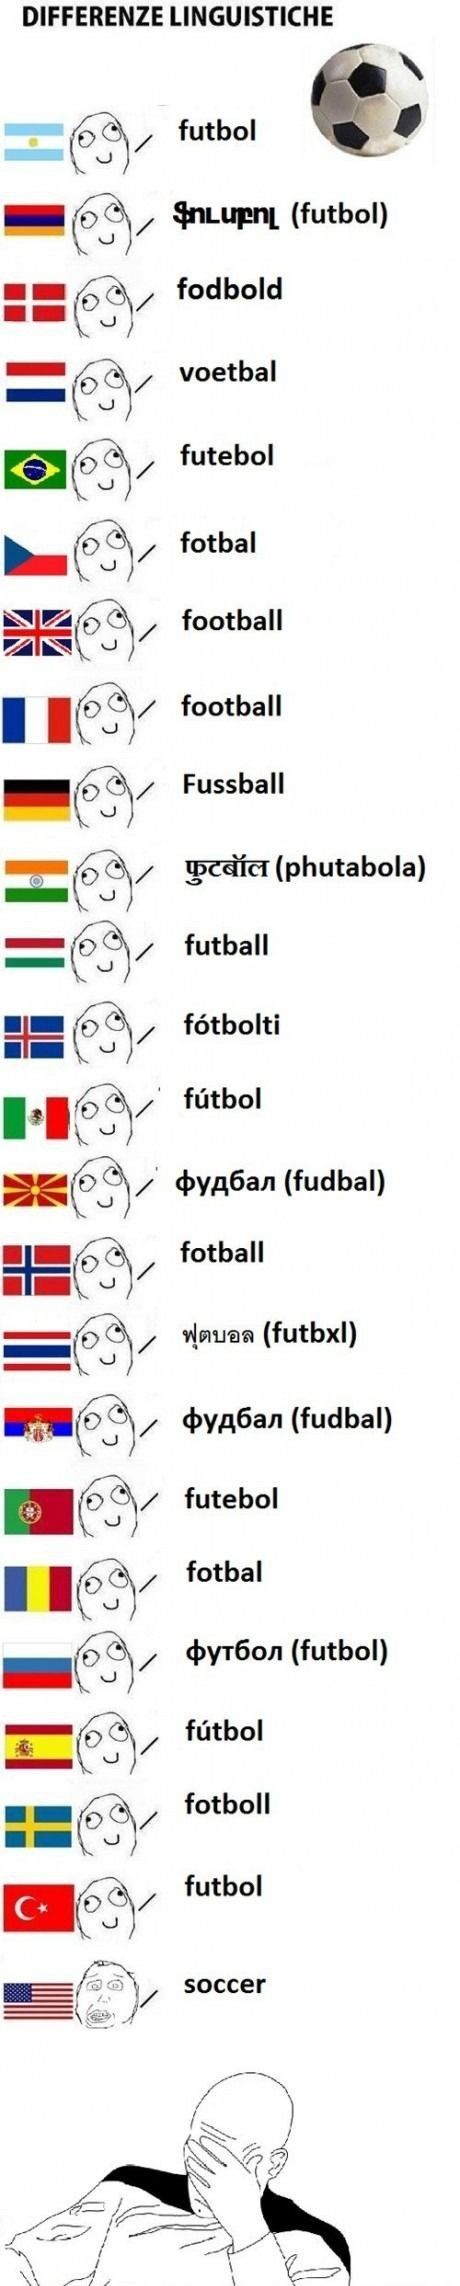 Soccer / Futbol and everything in between!